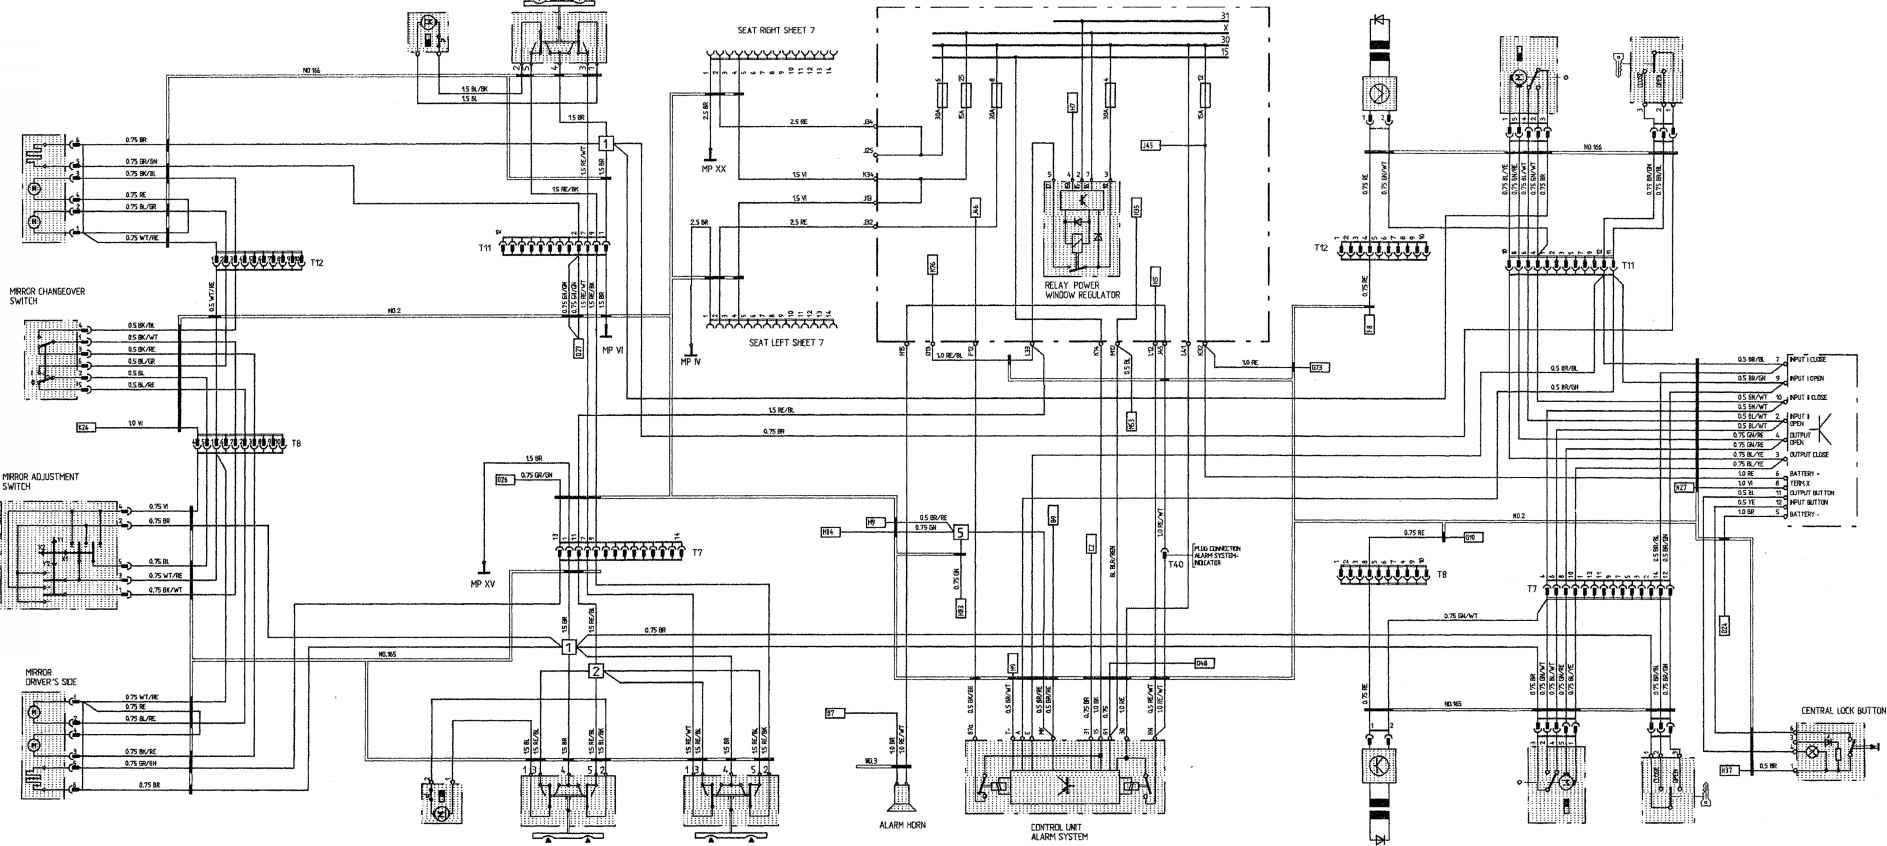 1981 porsche 928 wiring diagram